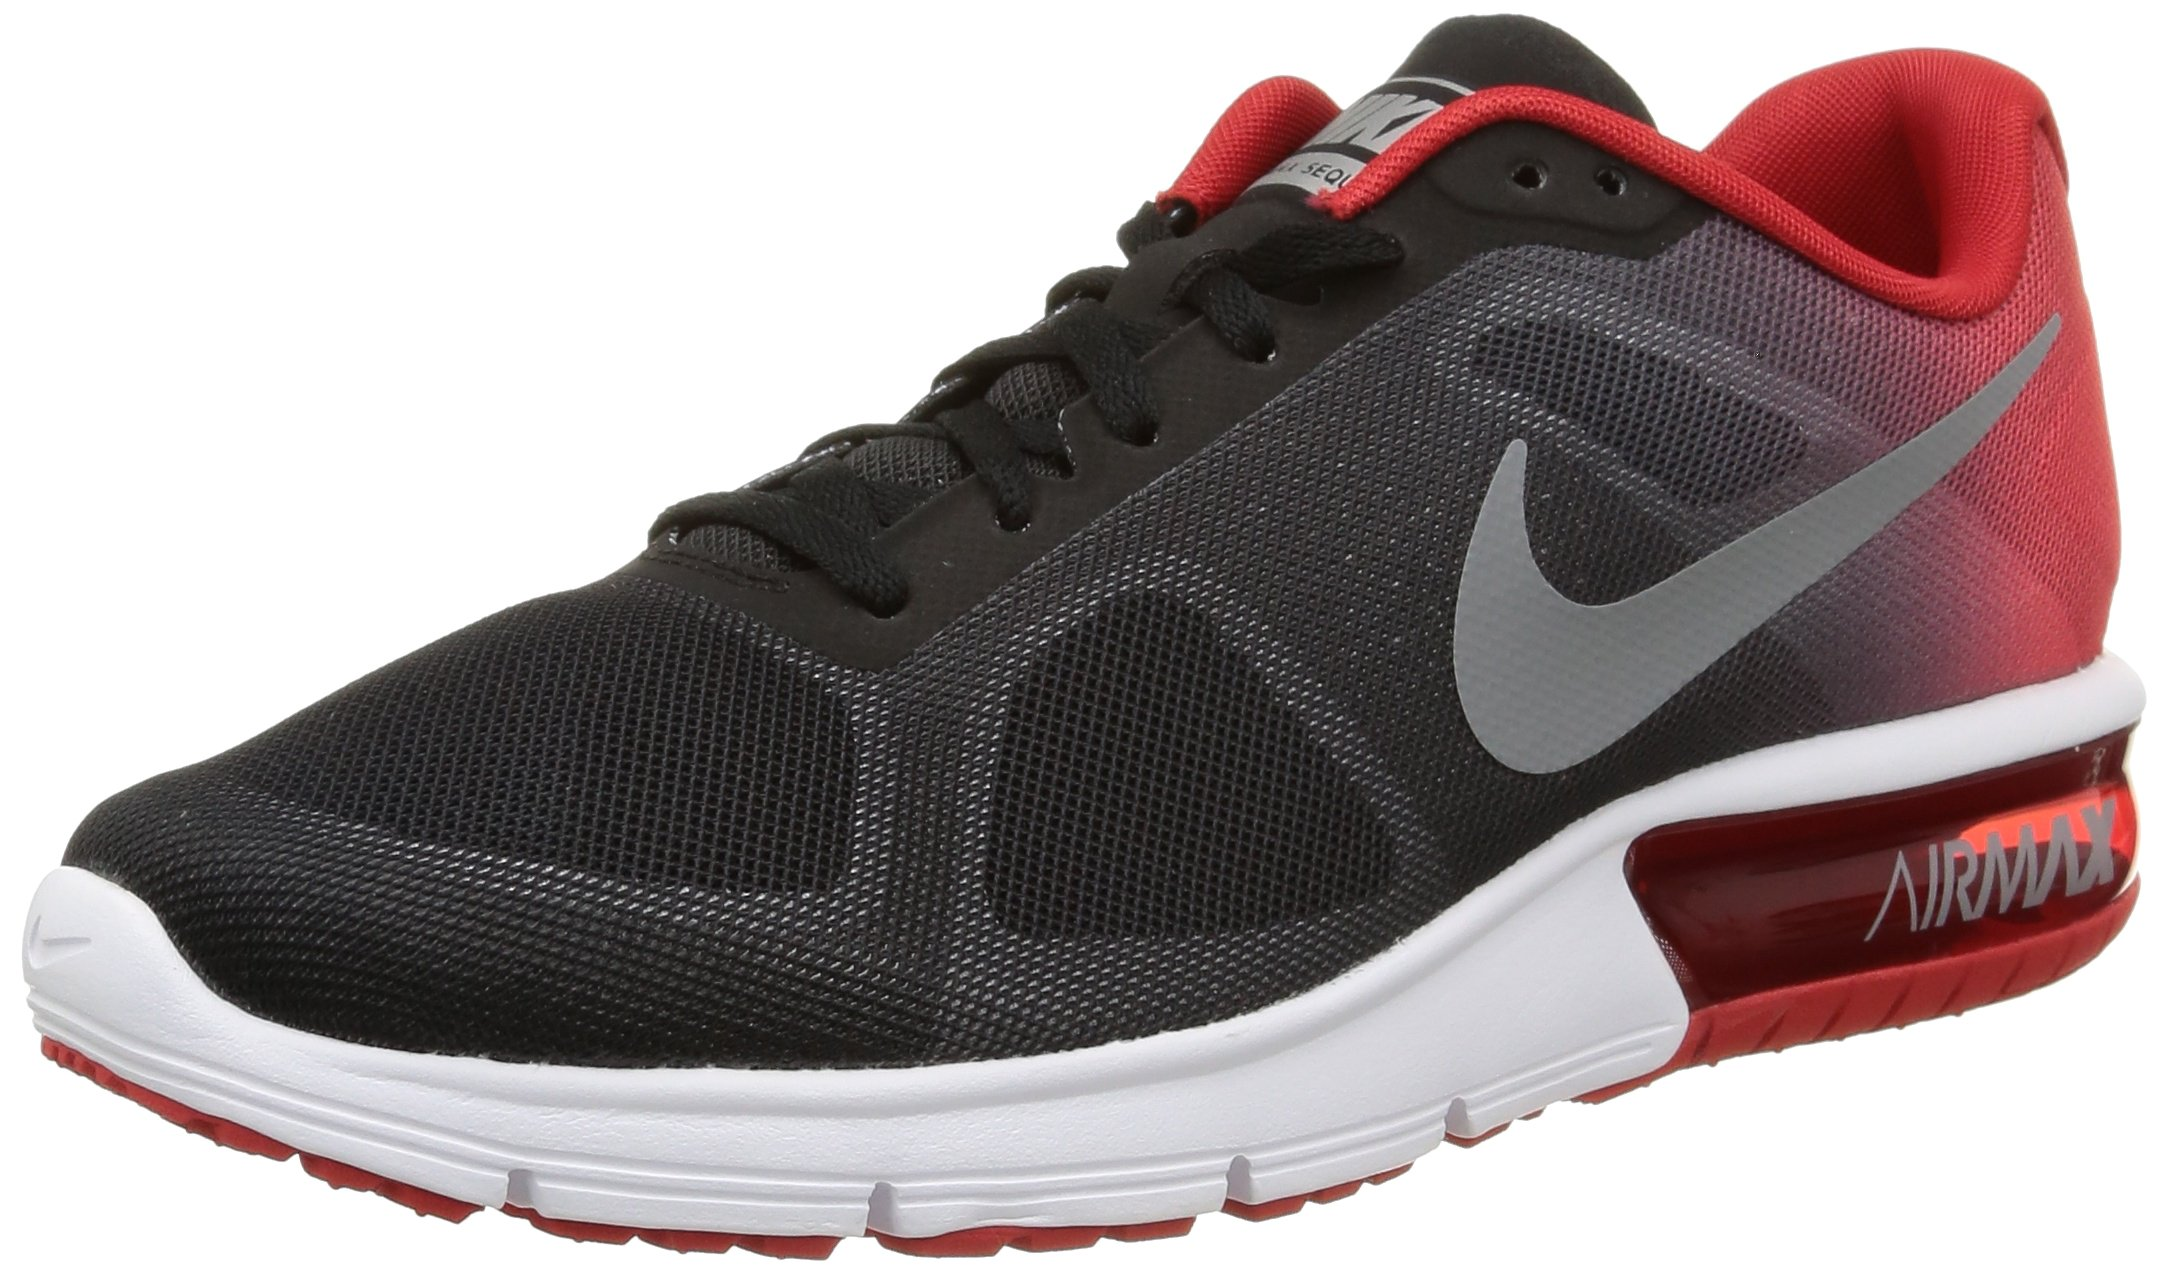 newest 252f5 33c2d Galleon - Nike Men s Air Max Sequent Running Shoe Black University Red Cool  Grey Size 8 M US